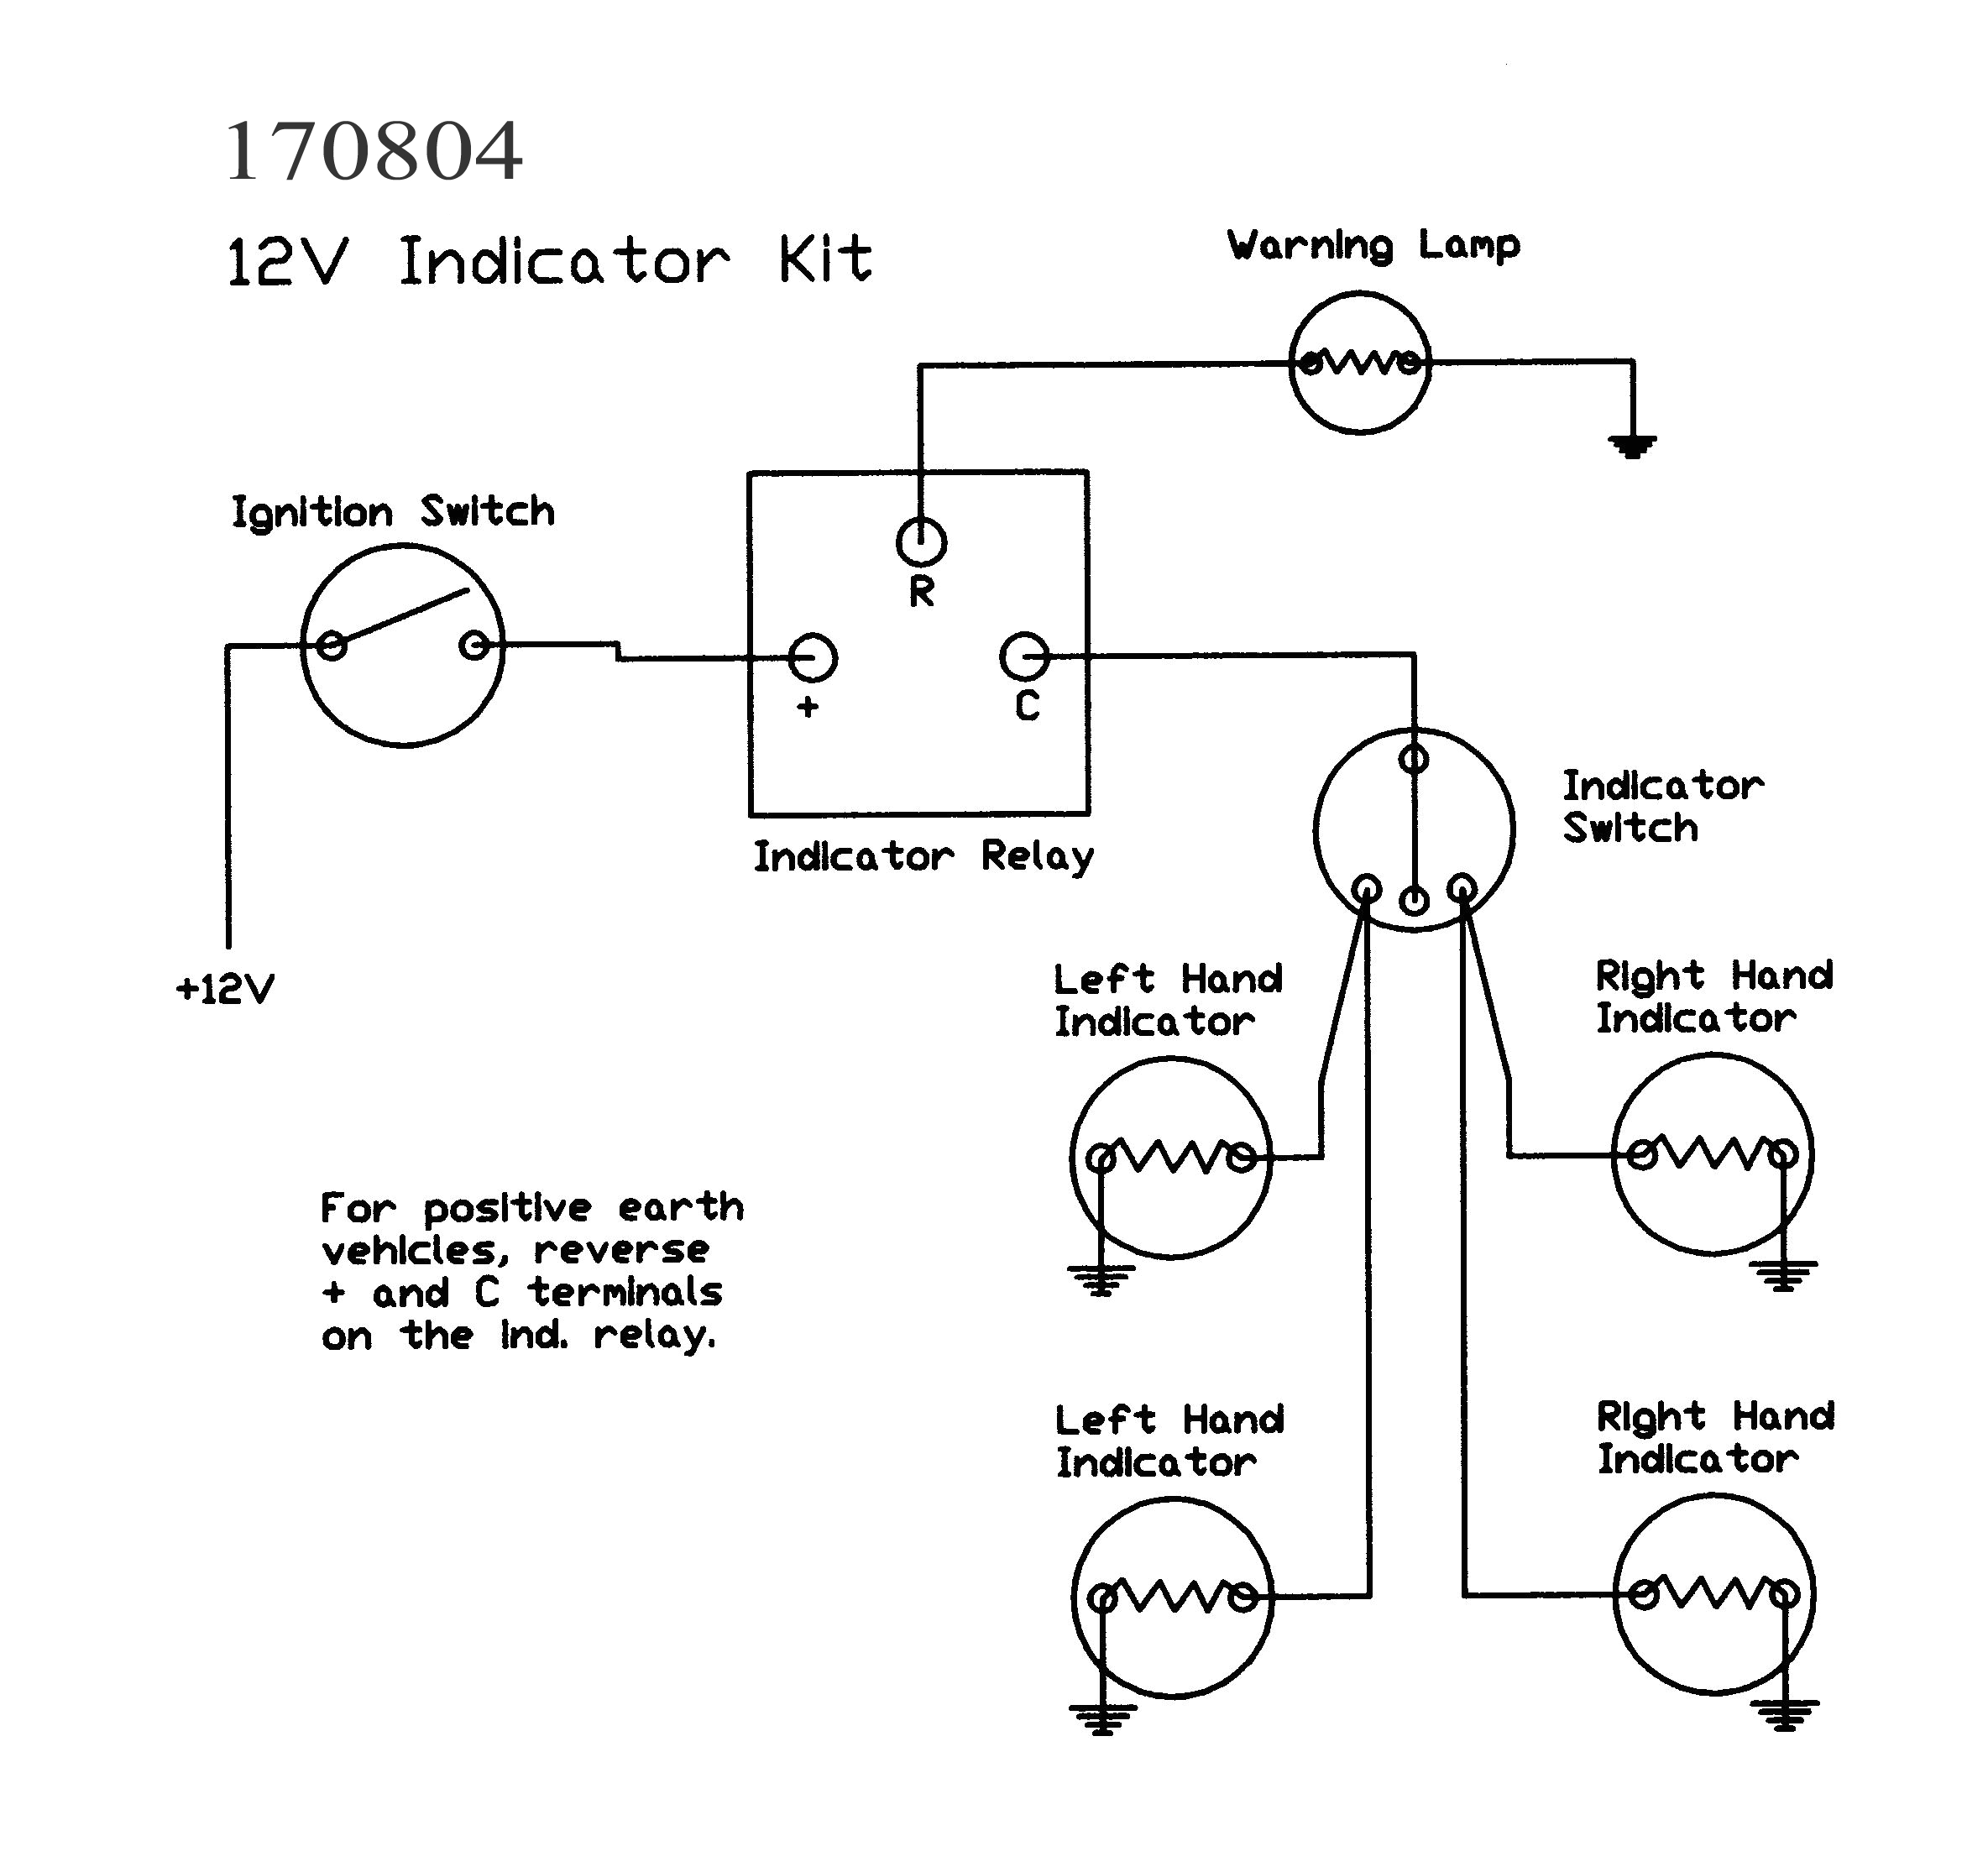 12v led indicator light wiring diagram wiring diagram save diagram showing how to wire a simple switch with an indicator light